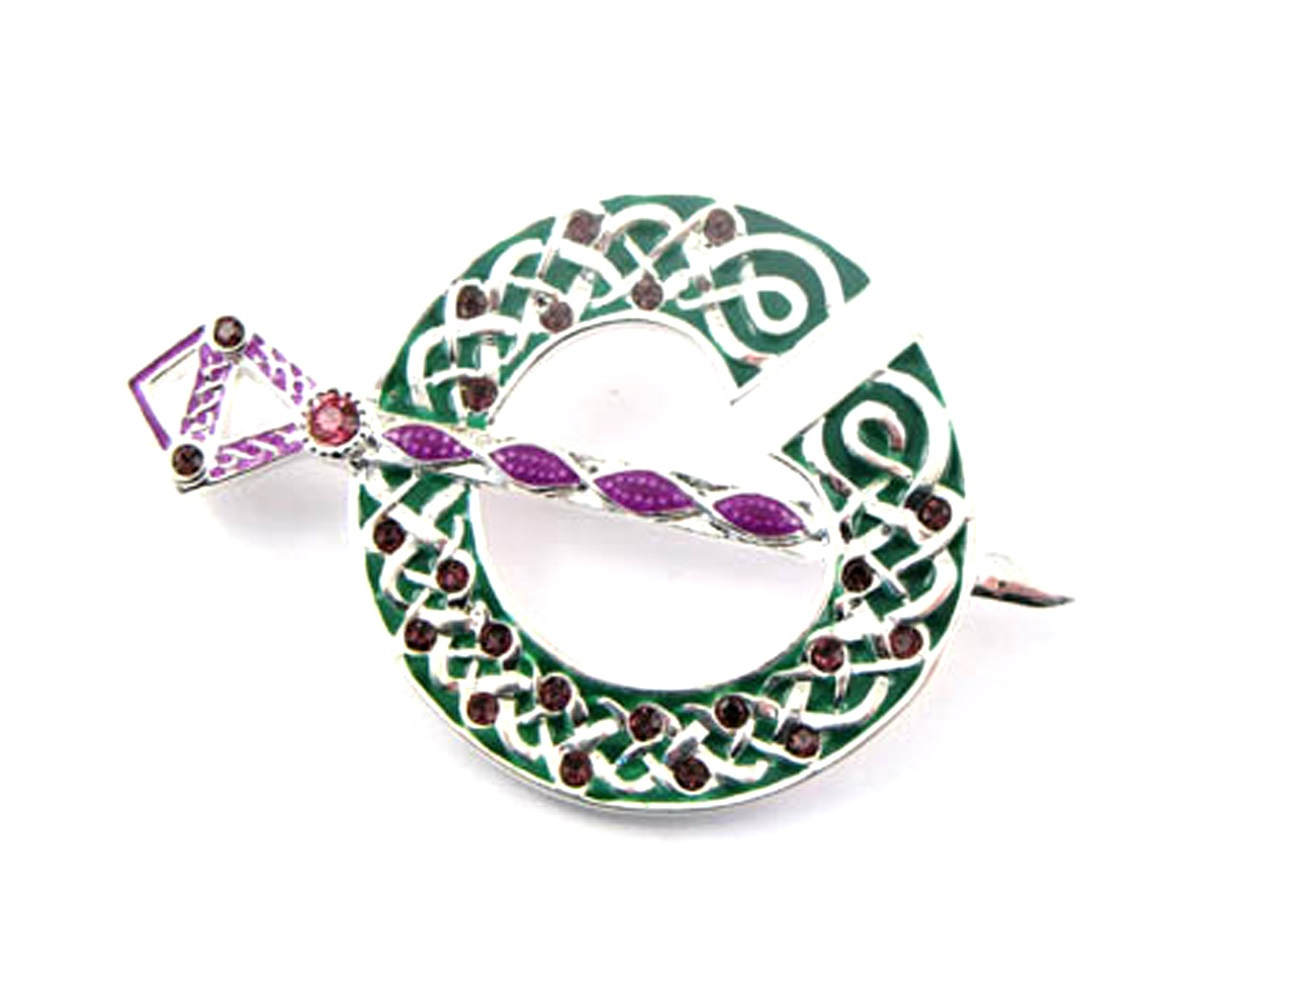 Tara Brooch Silver Plate Enamel & Purple Gems from Ireland by Amethyst Dublin